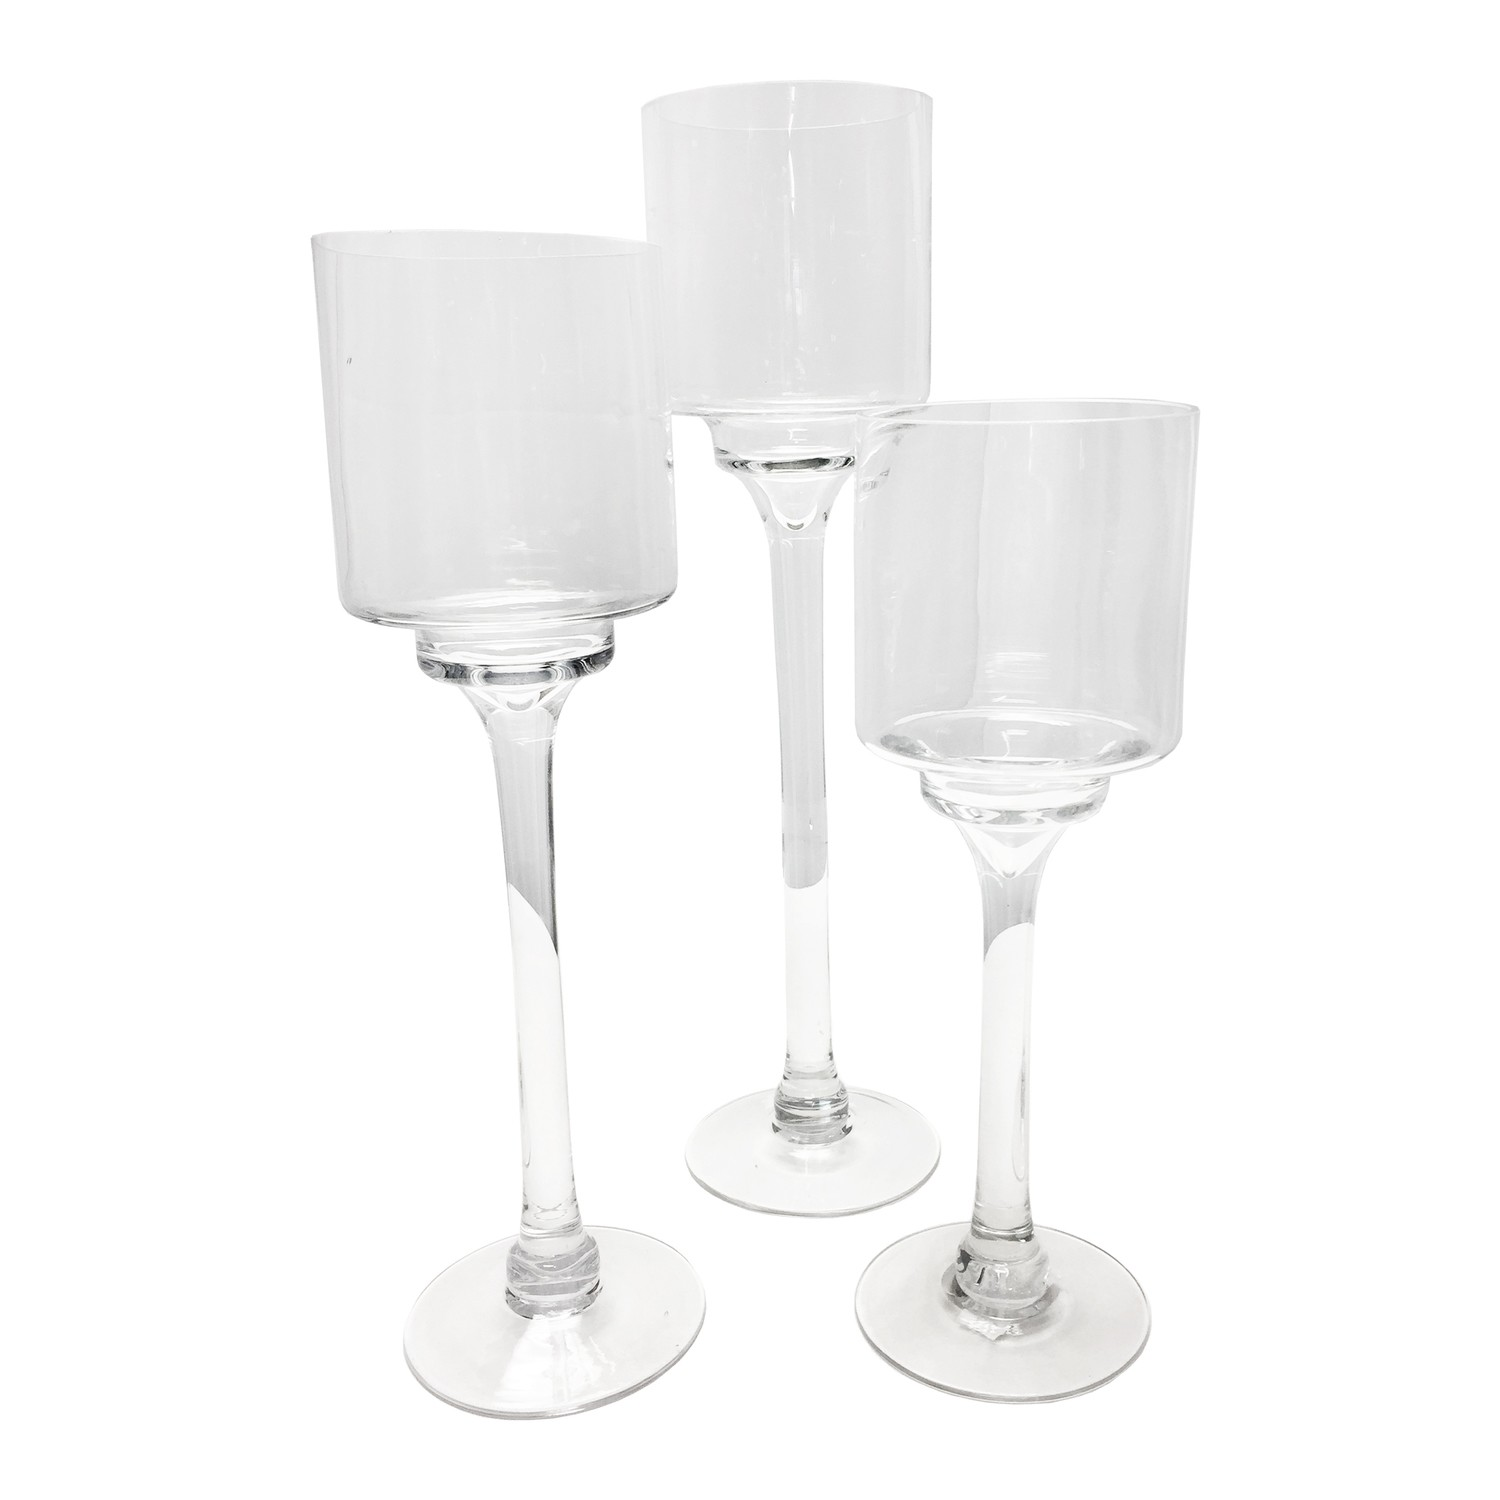 Glass Pedestal Candleholders, Set of 3